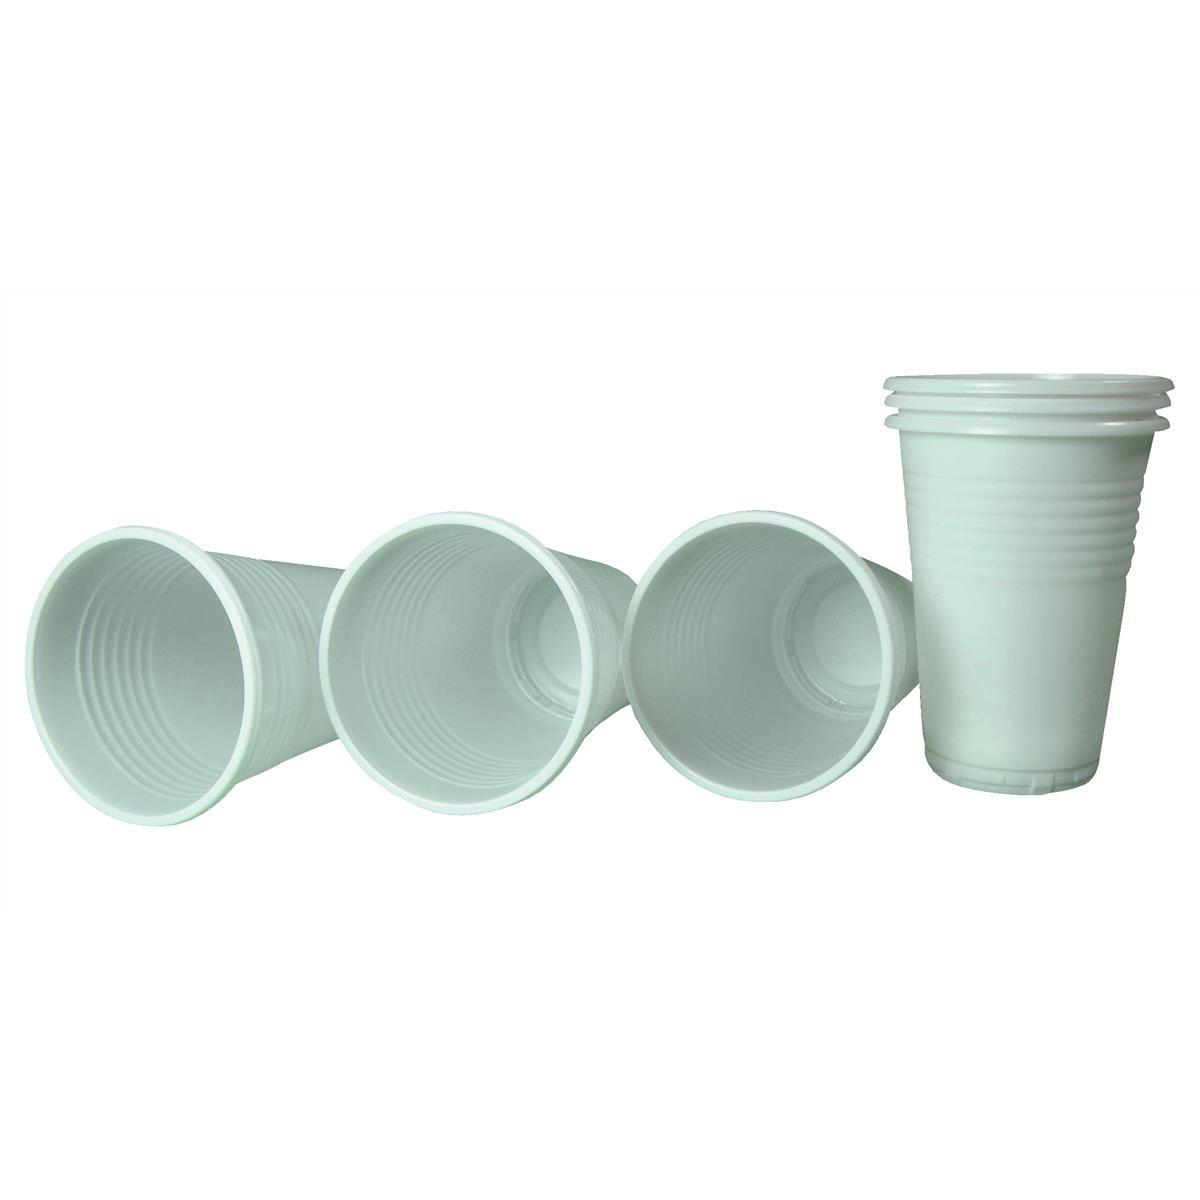 Disposable Cups & Accessories Vending Cups Biodegradable Tall 7oz 207ml Ref BCW-7 Pack 100